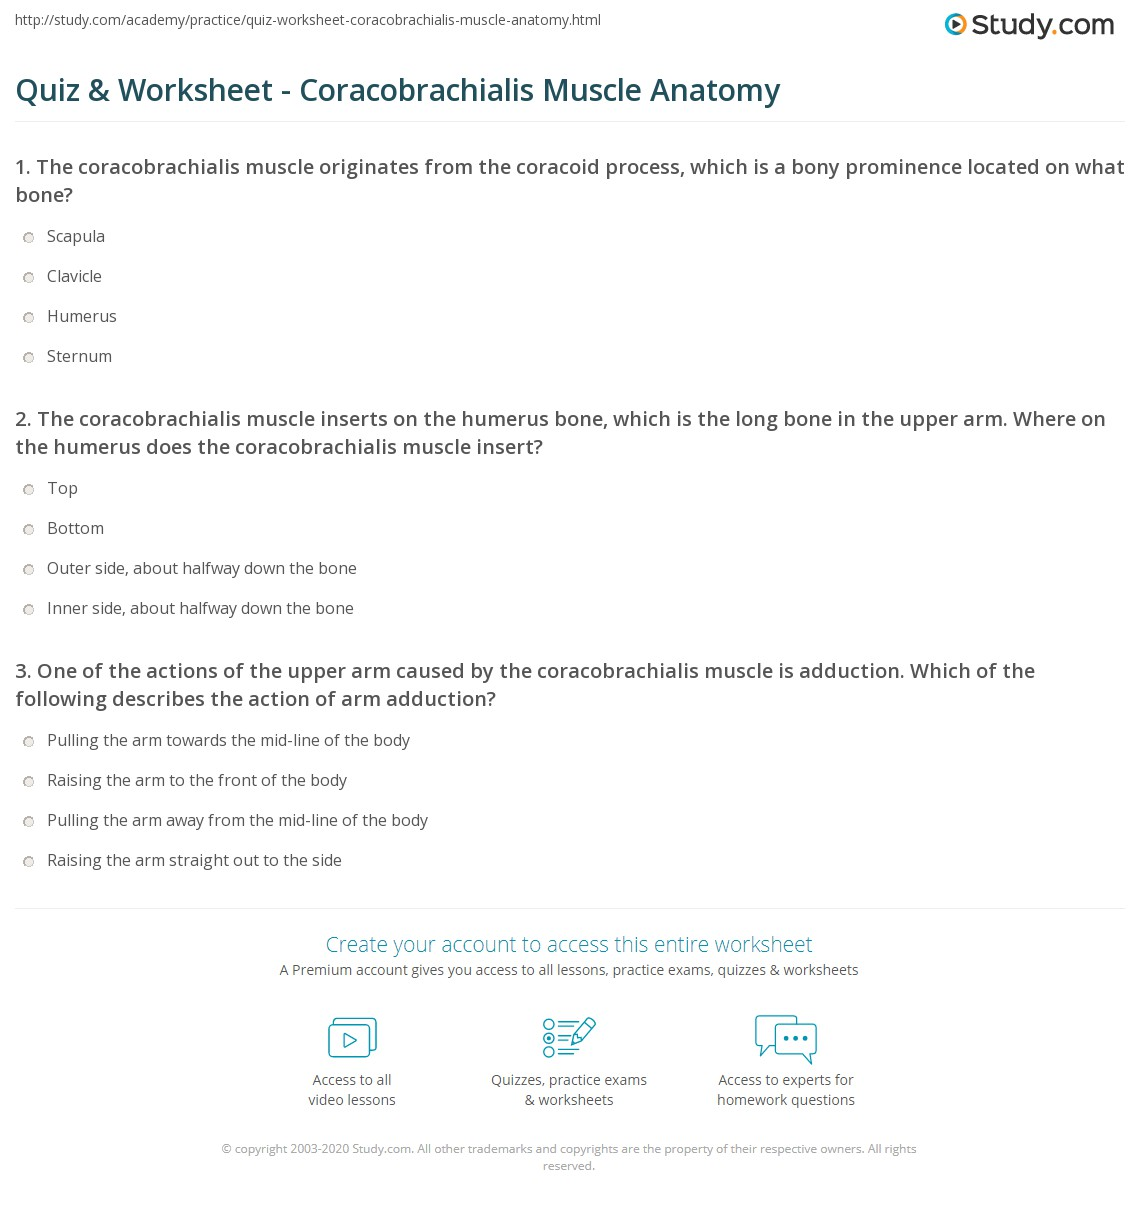 Quiz & Worksheet - Coracobrachialis Muscle Anatomy | Study.com